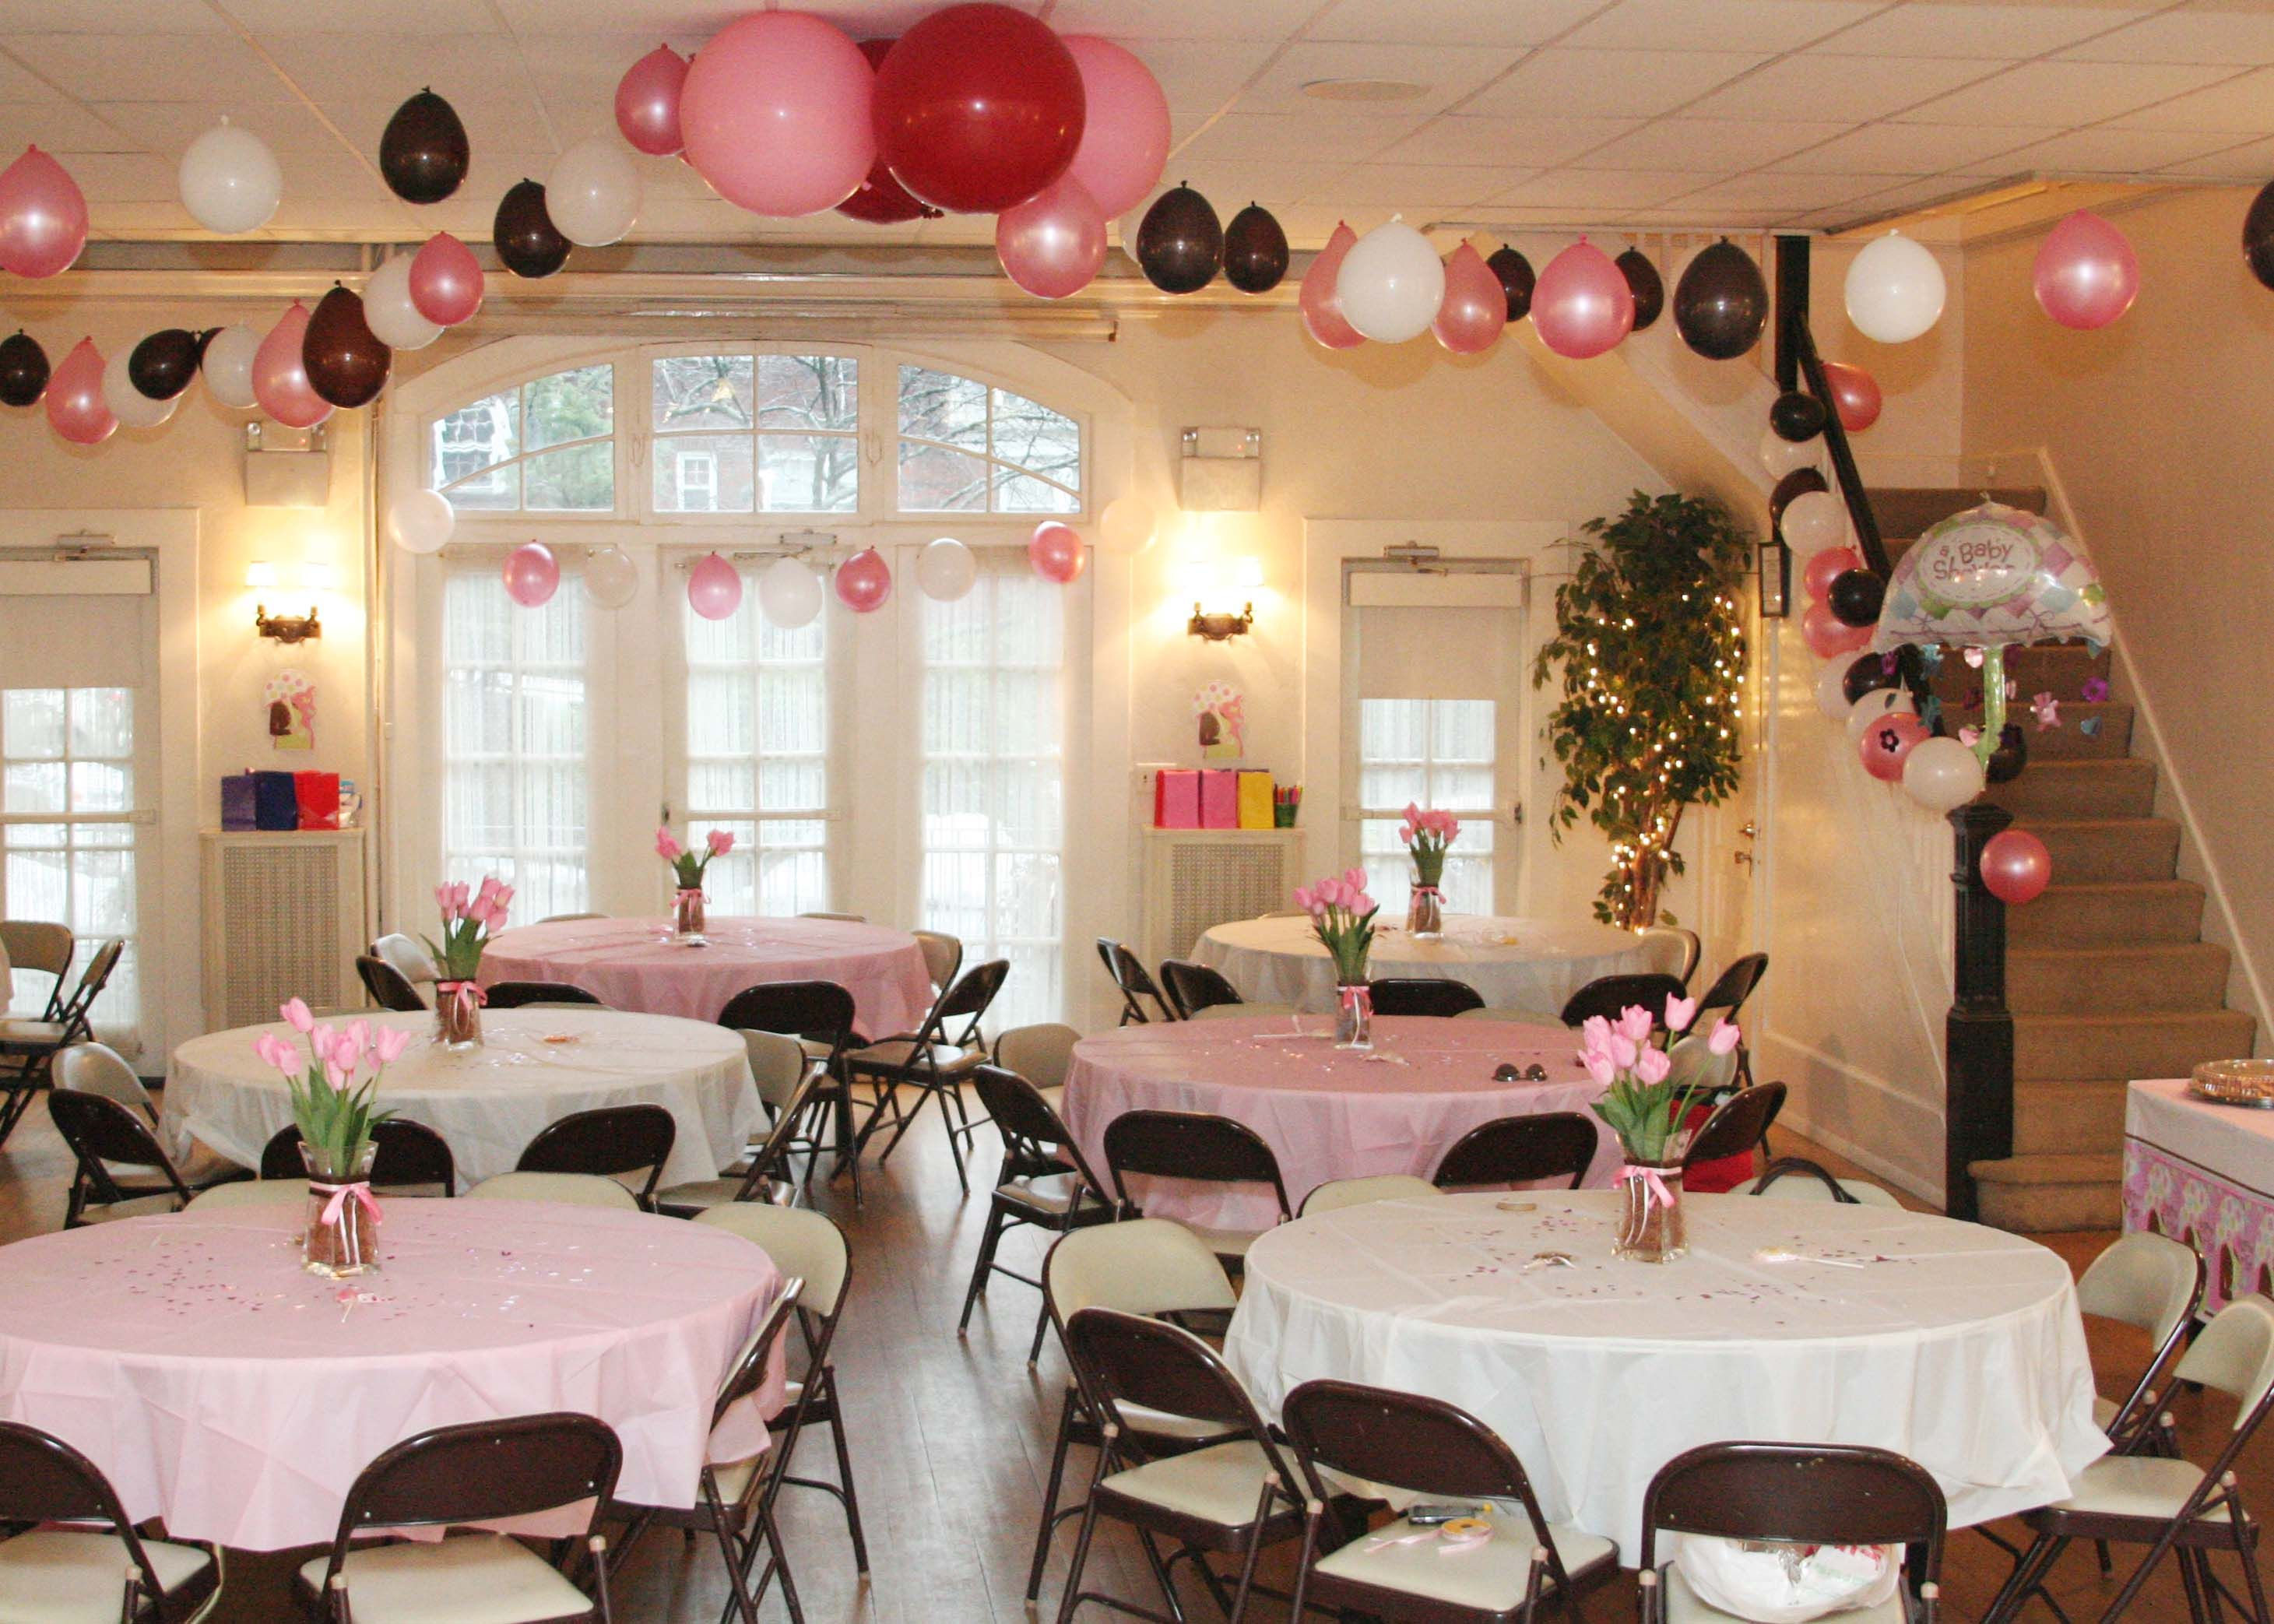 Baby Shower Party Venue   Google Search